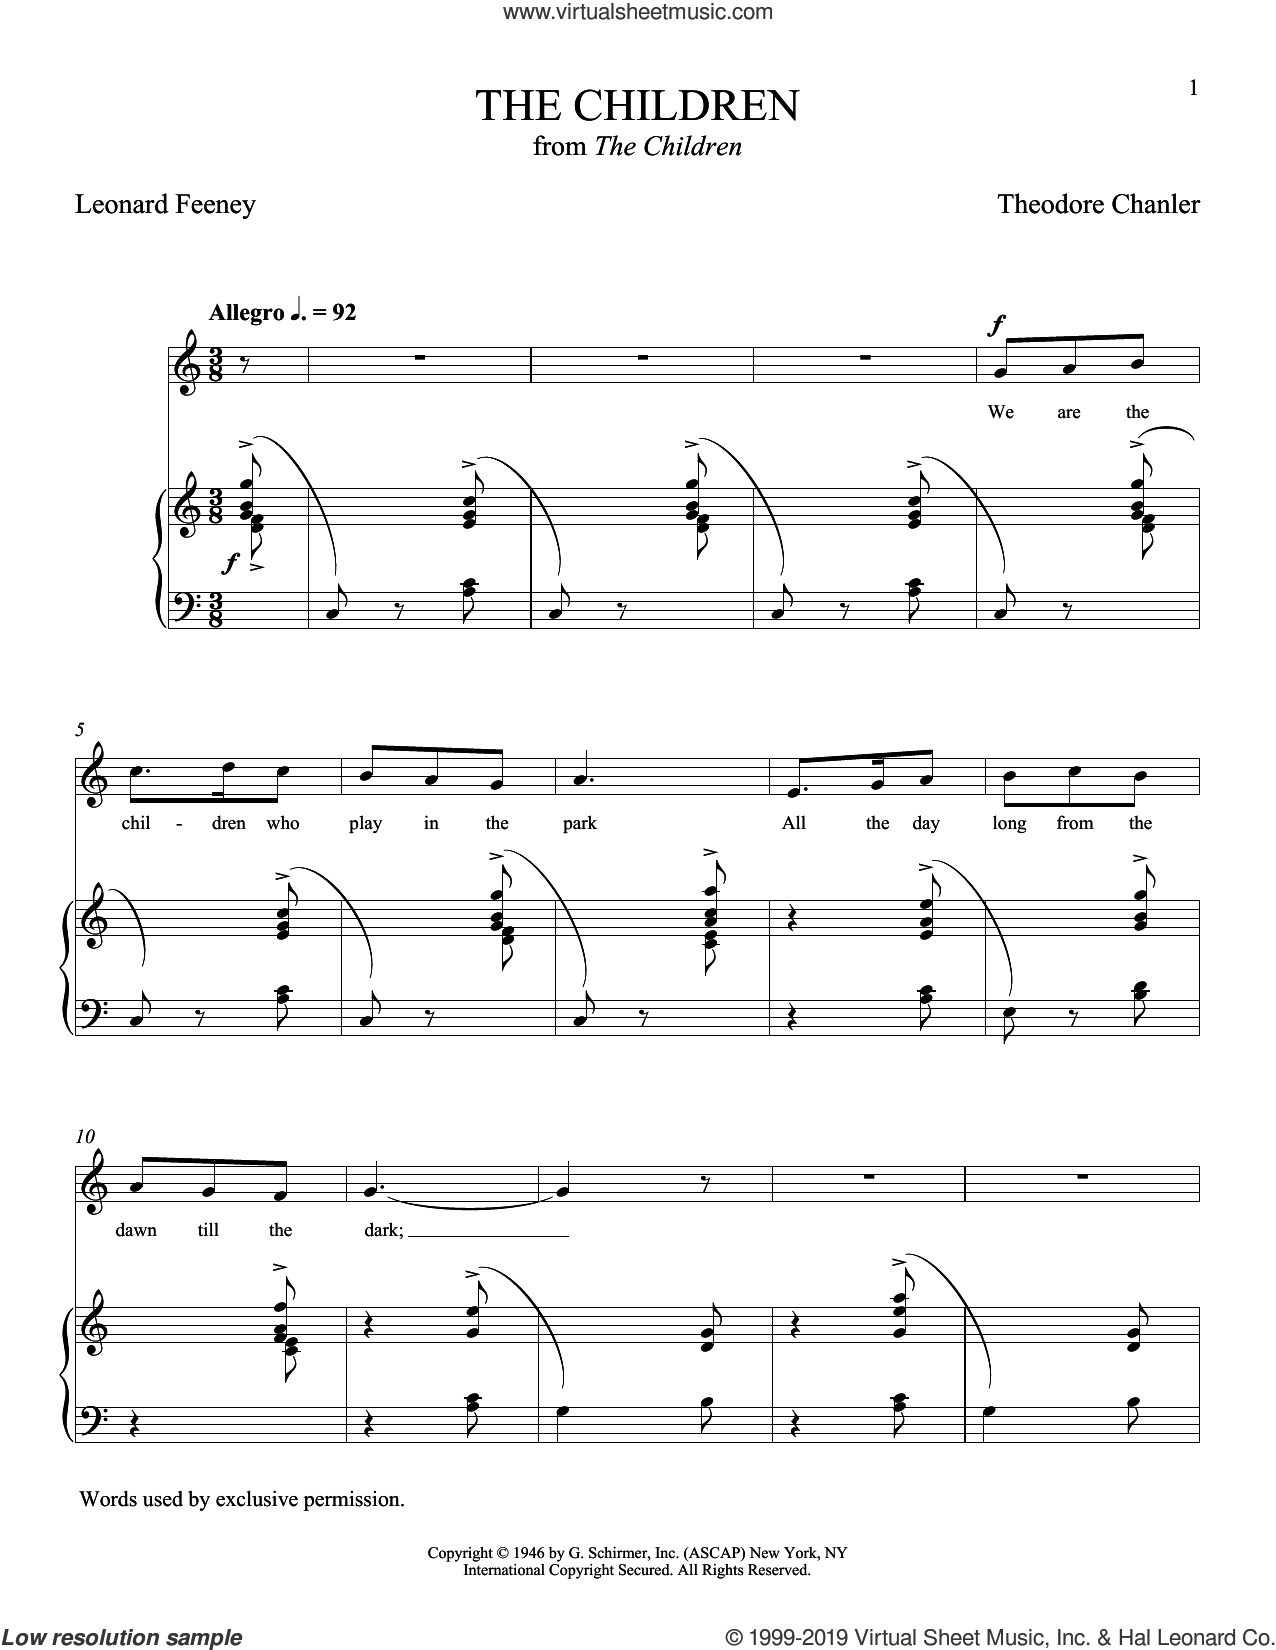 The Children sheet music for voice and piano (Soprano) by Theodore Chanler, Leonard Feeney and Leonard Feeney and Theodore Chanler, classical score, intermediate skill level